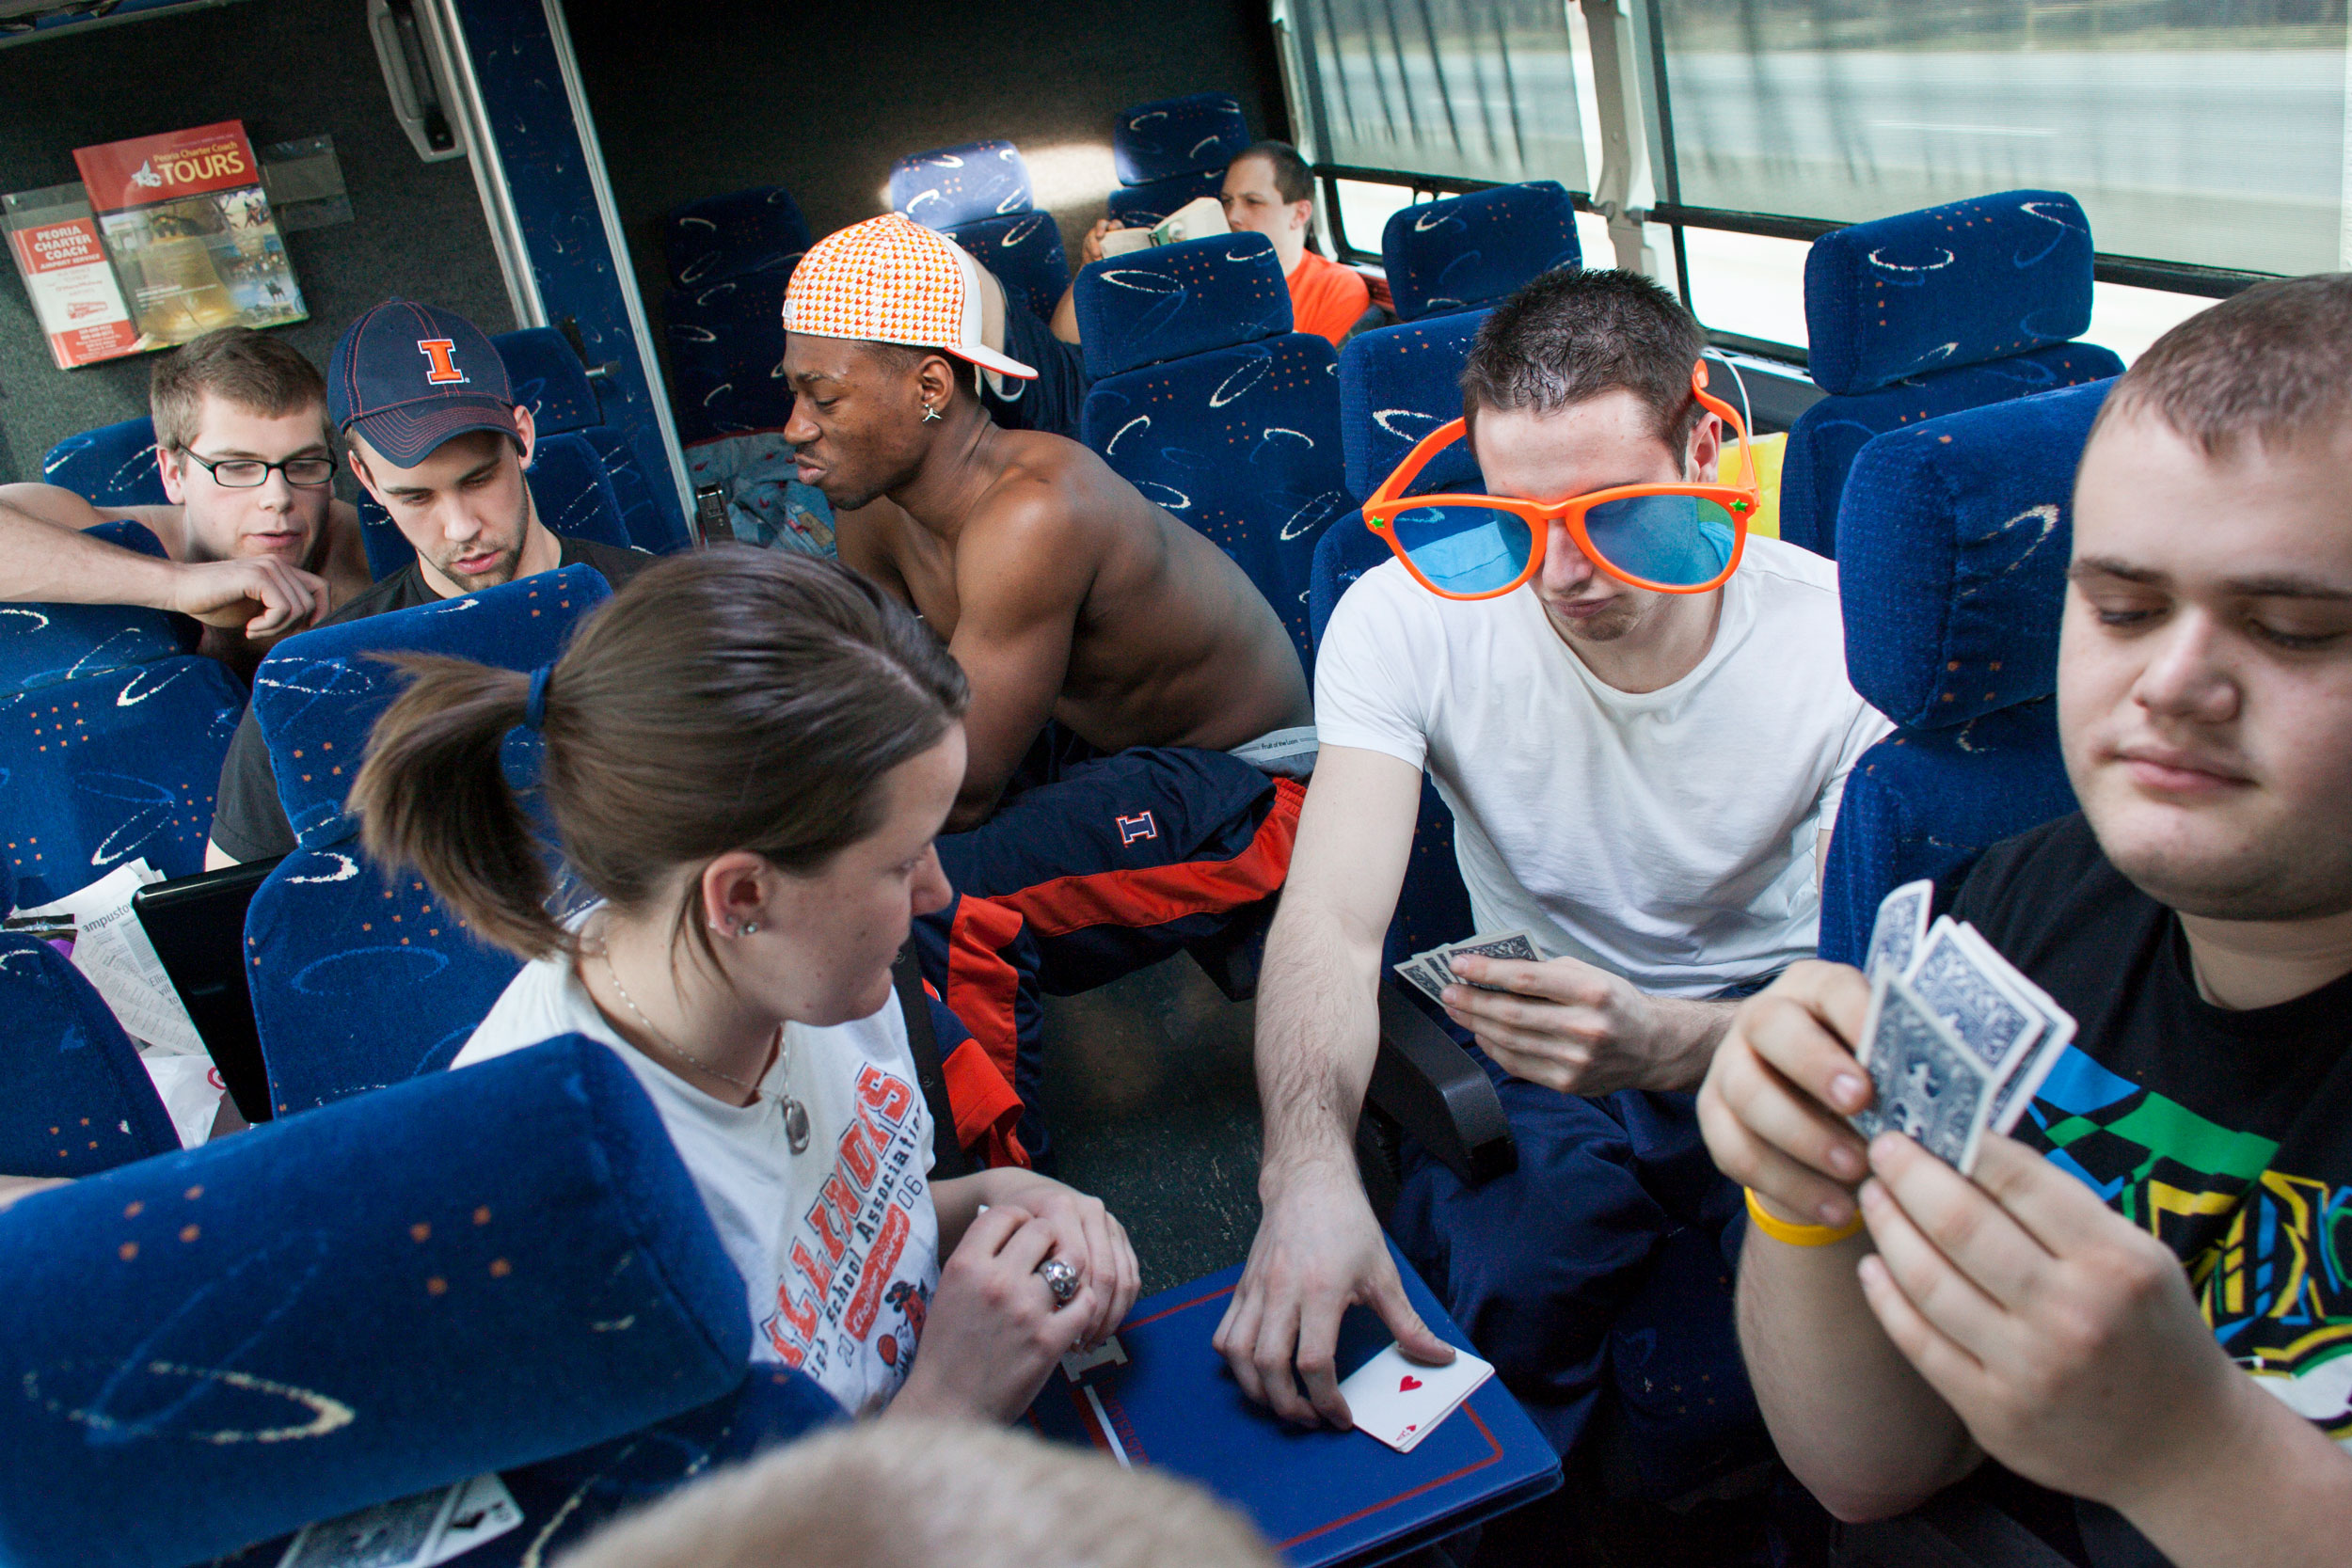 To ward off boredom on a bus trip, from right, Alex Grunstein, Steve Serio. and trainer Karla Wessels play cards; from left, Lars Spenger, Aaron Pike, and Brian Bell watch video on a laptop; and Drew Dokos, in the back, reads.